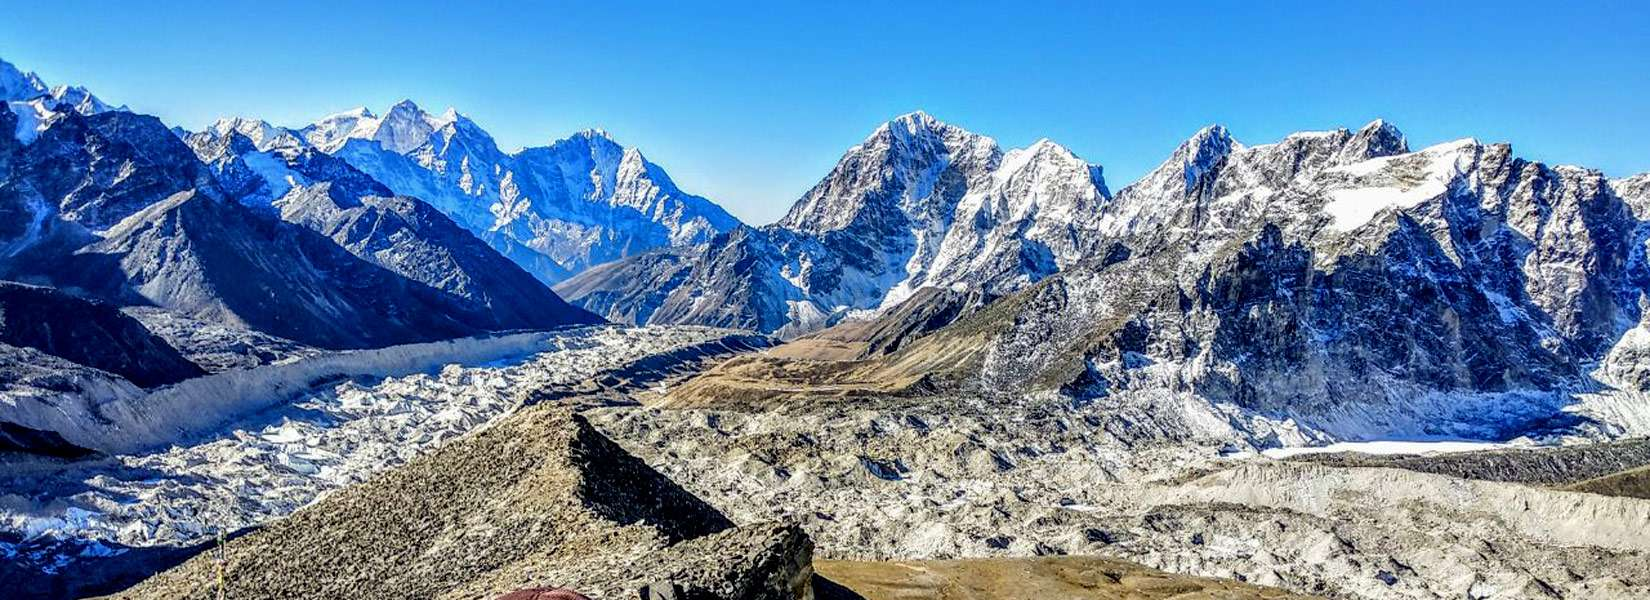 Best season to trek in Nepal Himalayas